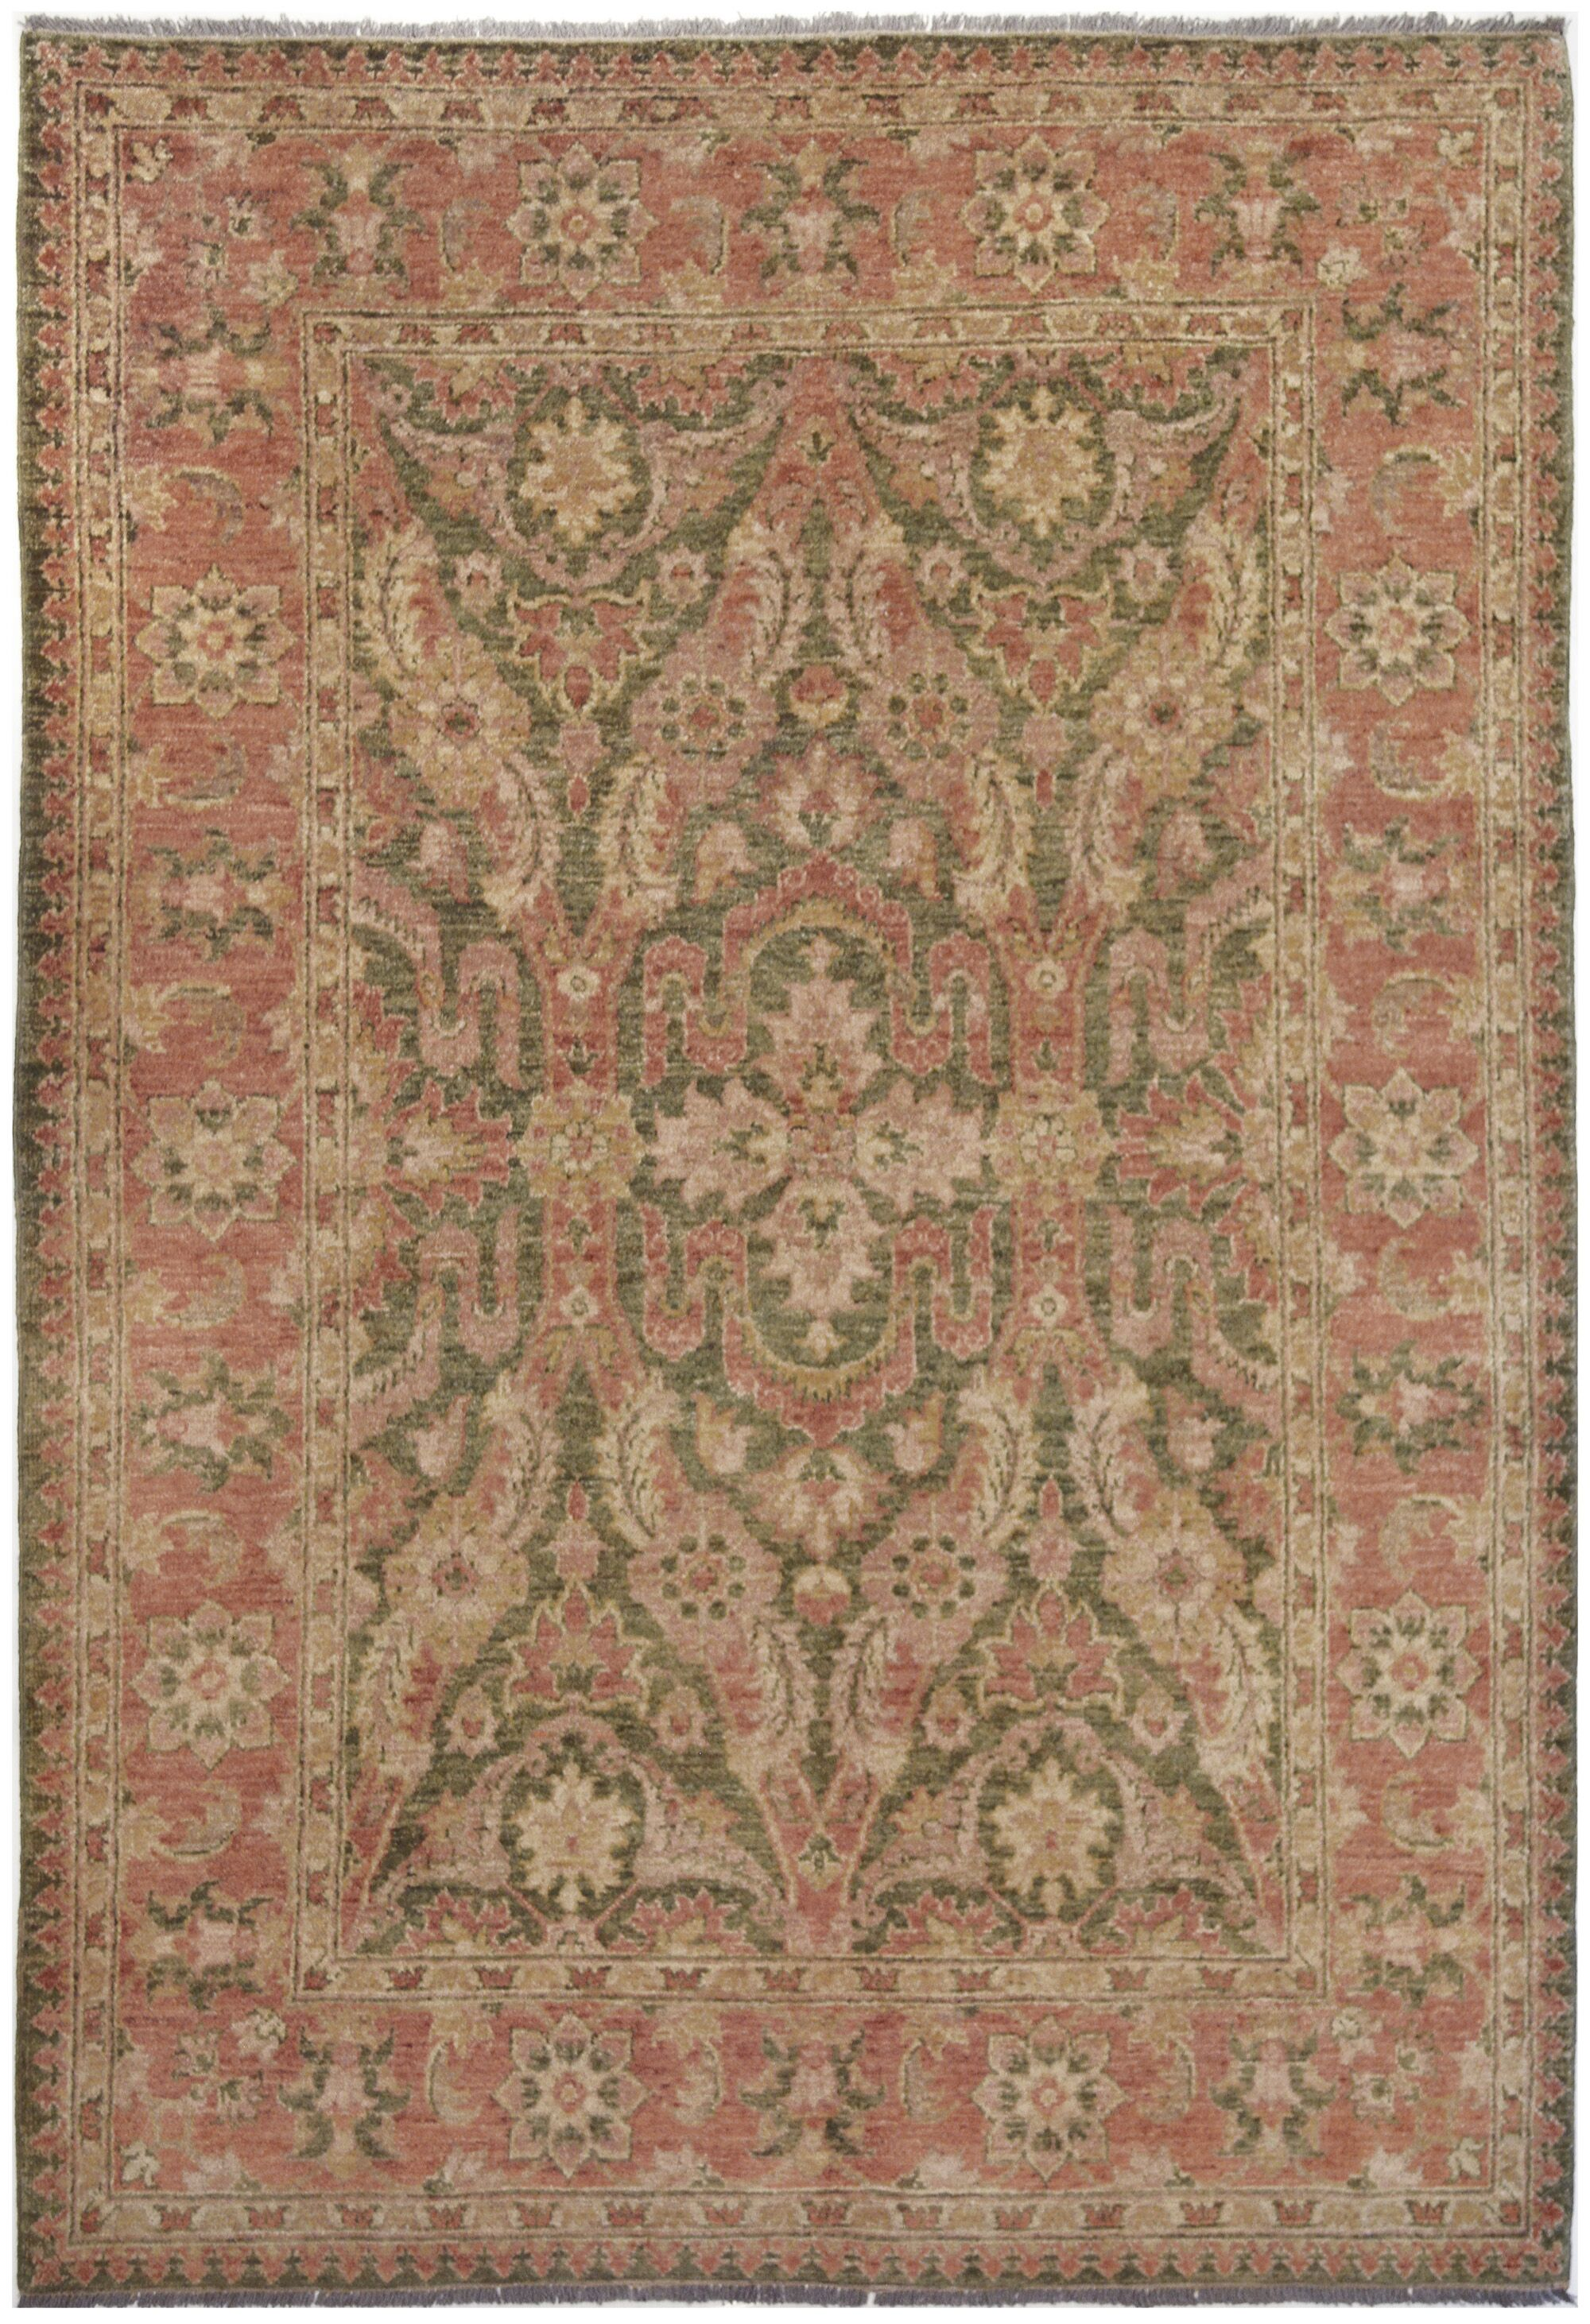 Agra Exquisite Hand-Knotted Wool Pink Indoor Area Rug